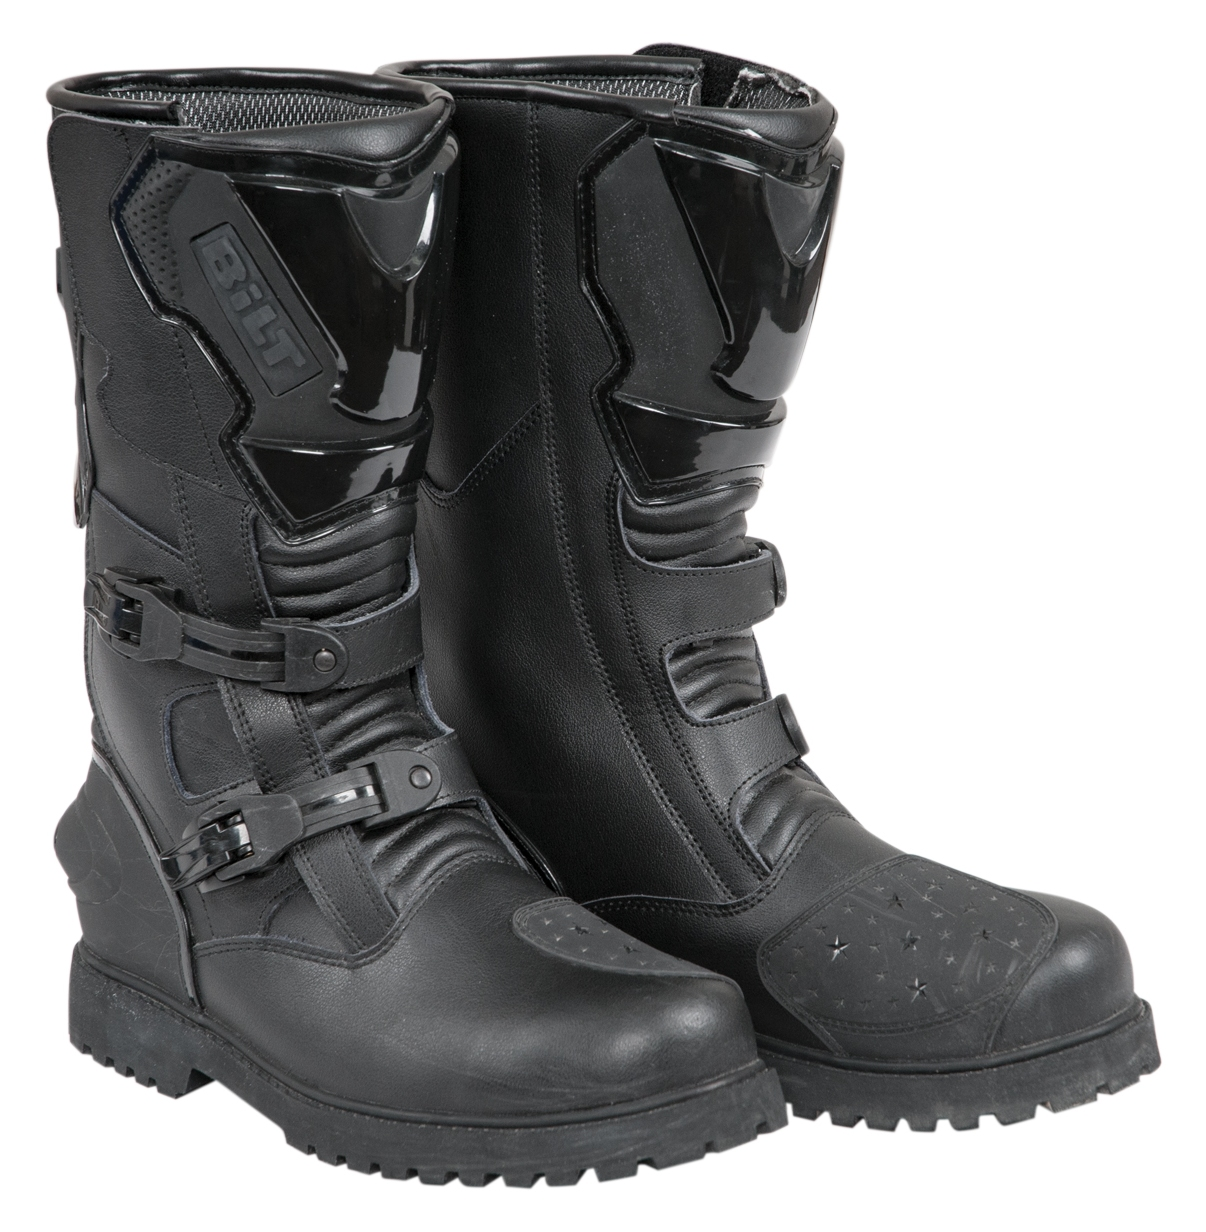 Bilt Discovery Boots Cycle Gear